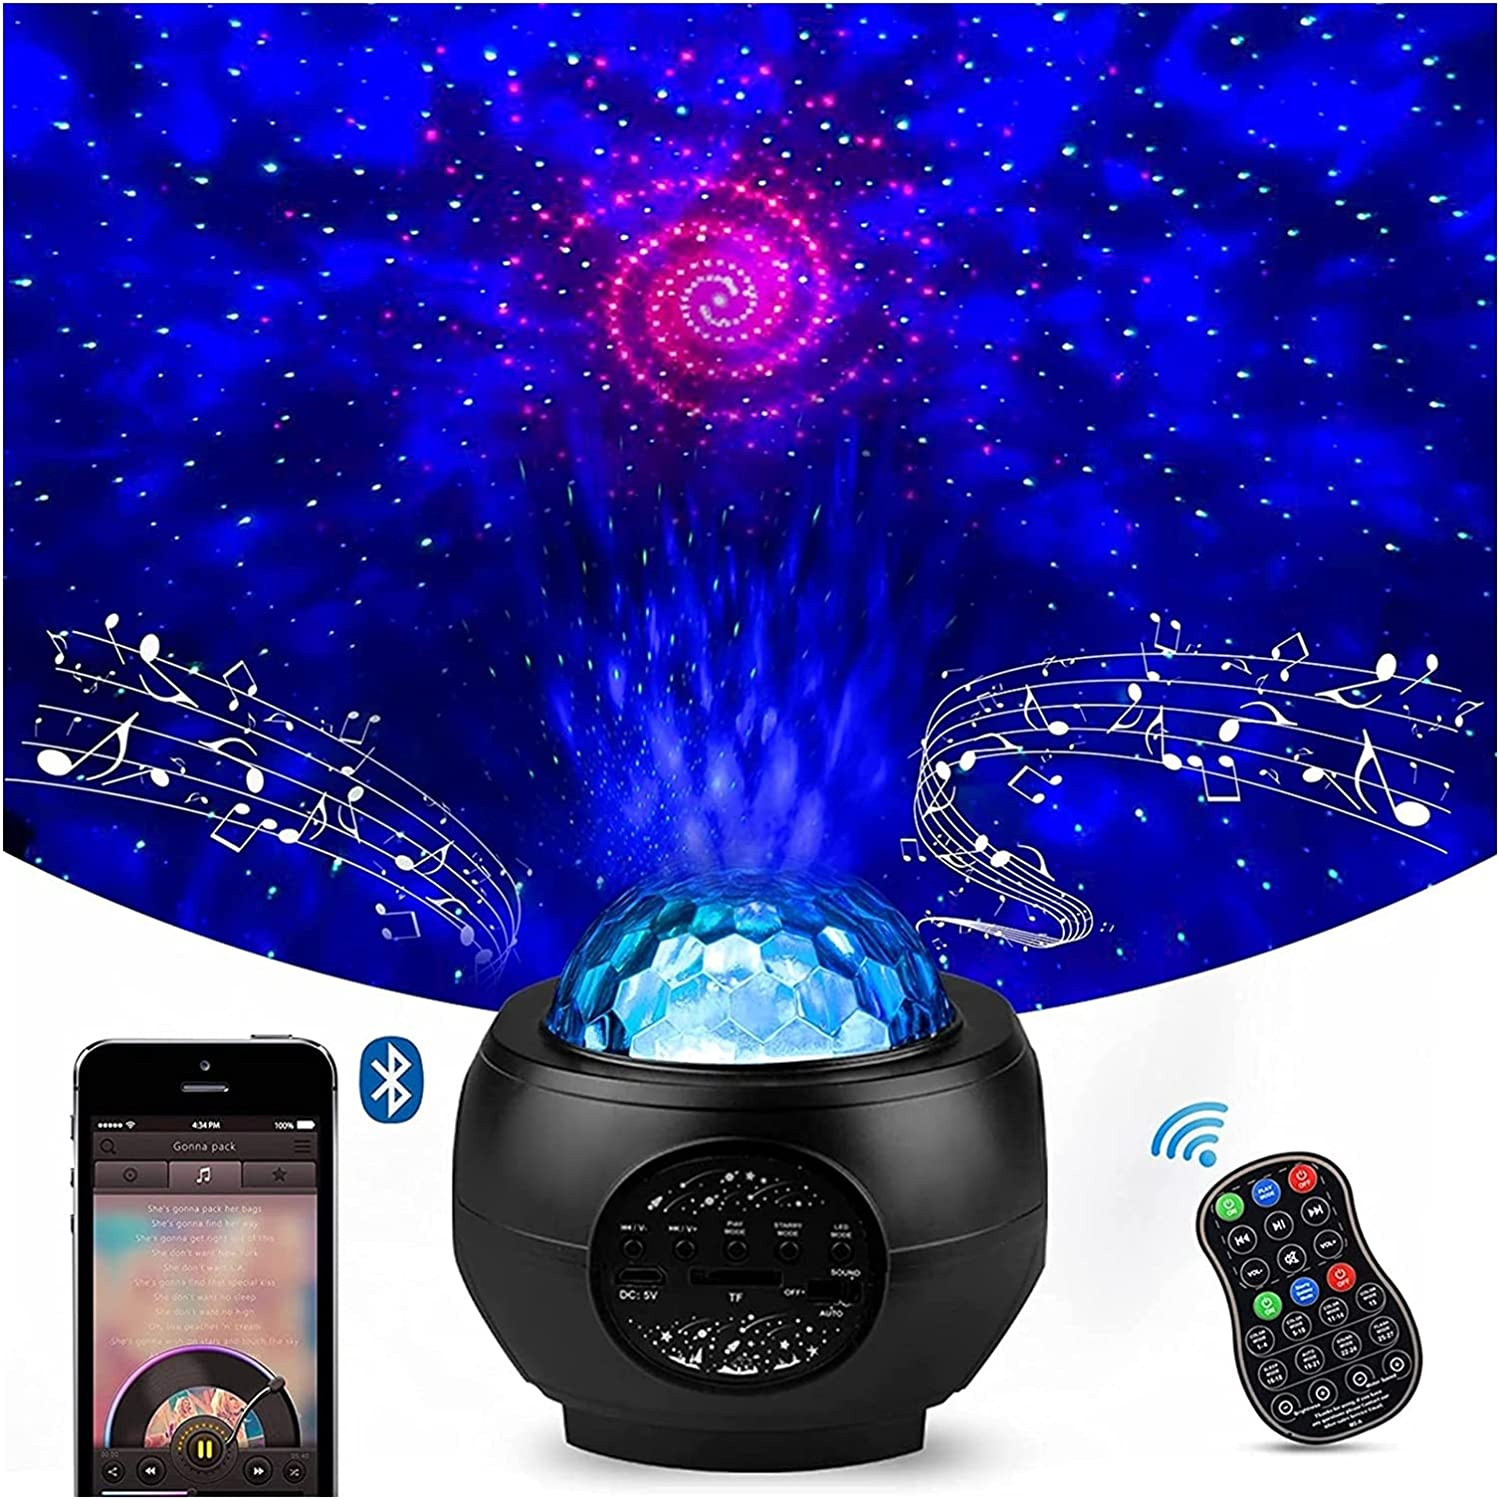 star projector 3 In 1 Max 63% OFF Multi Oce With Starry Color Star Max 70% OFF Projector